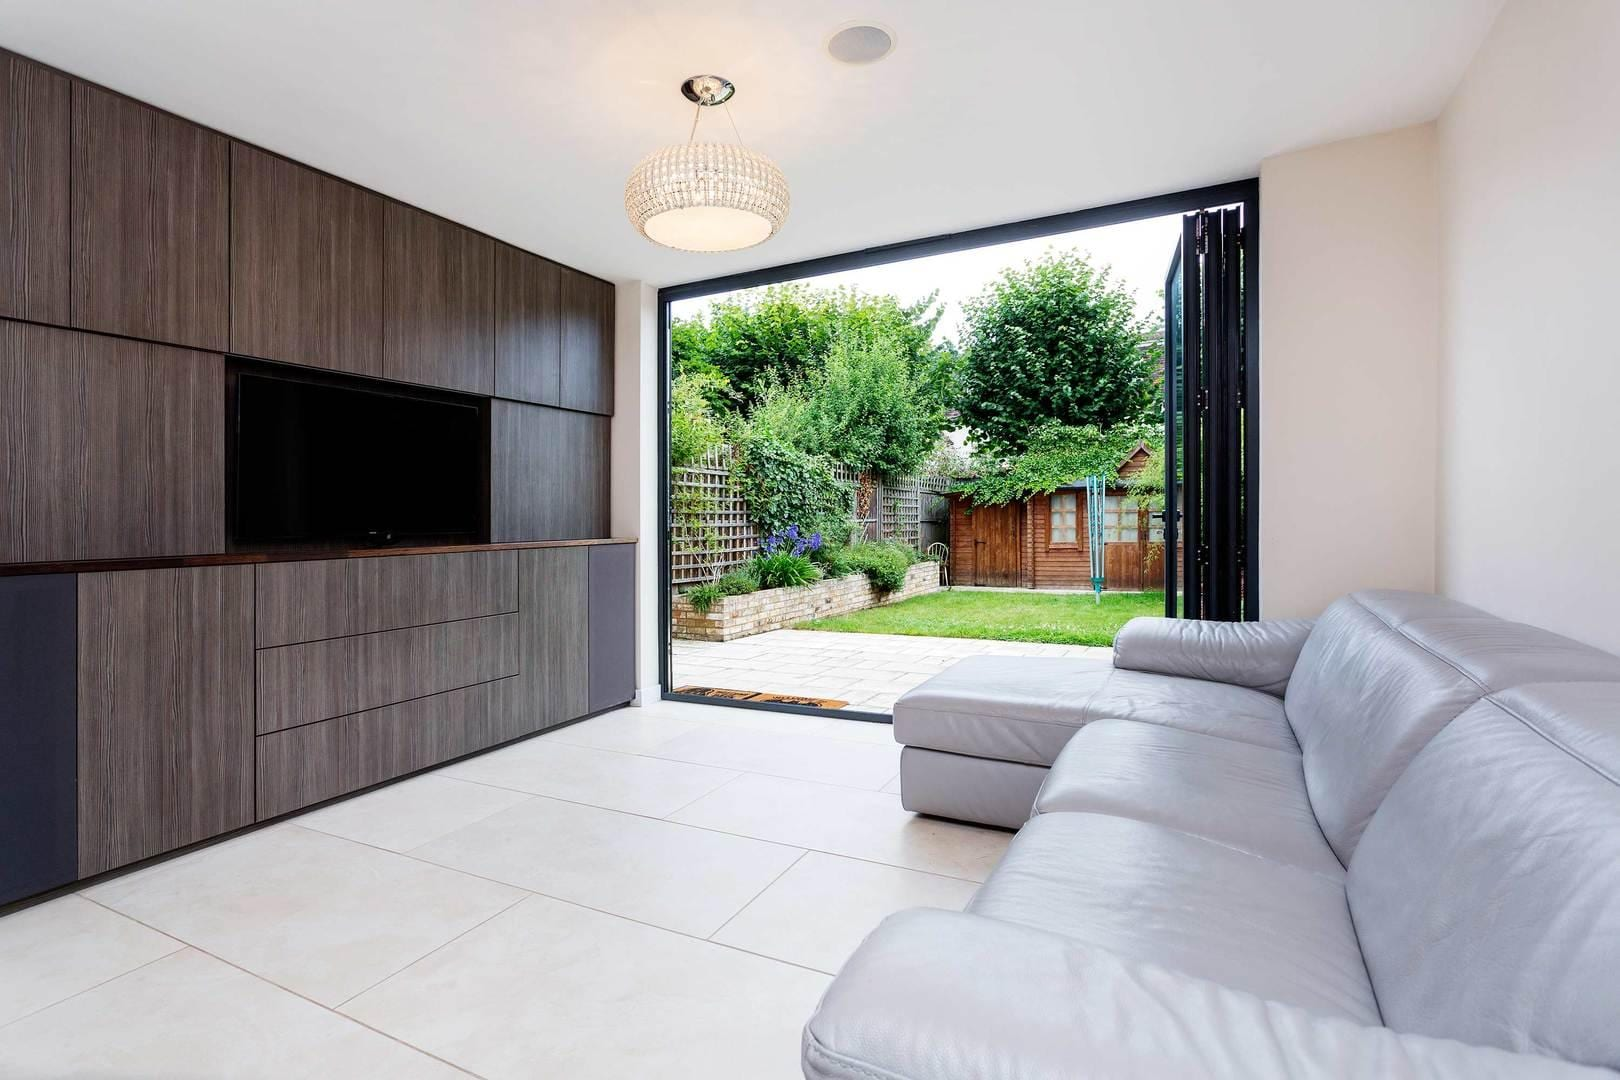 Property Image 2 - Modern Minimalist Wimbledon Home with Spacious Interior